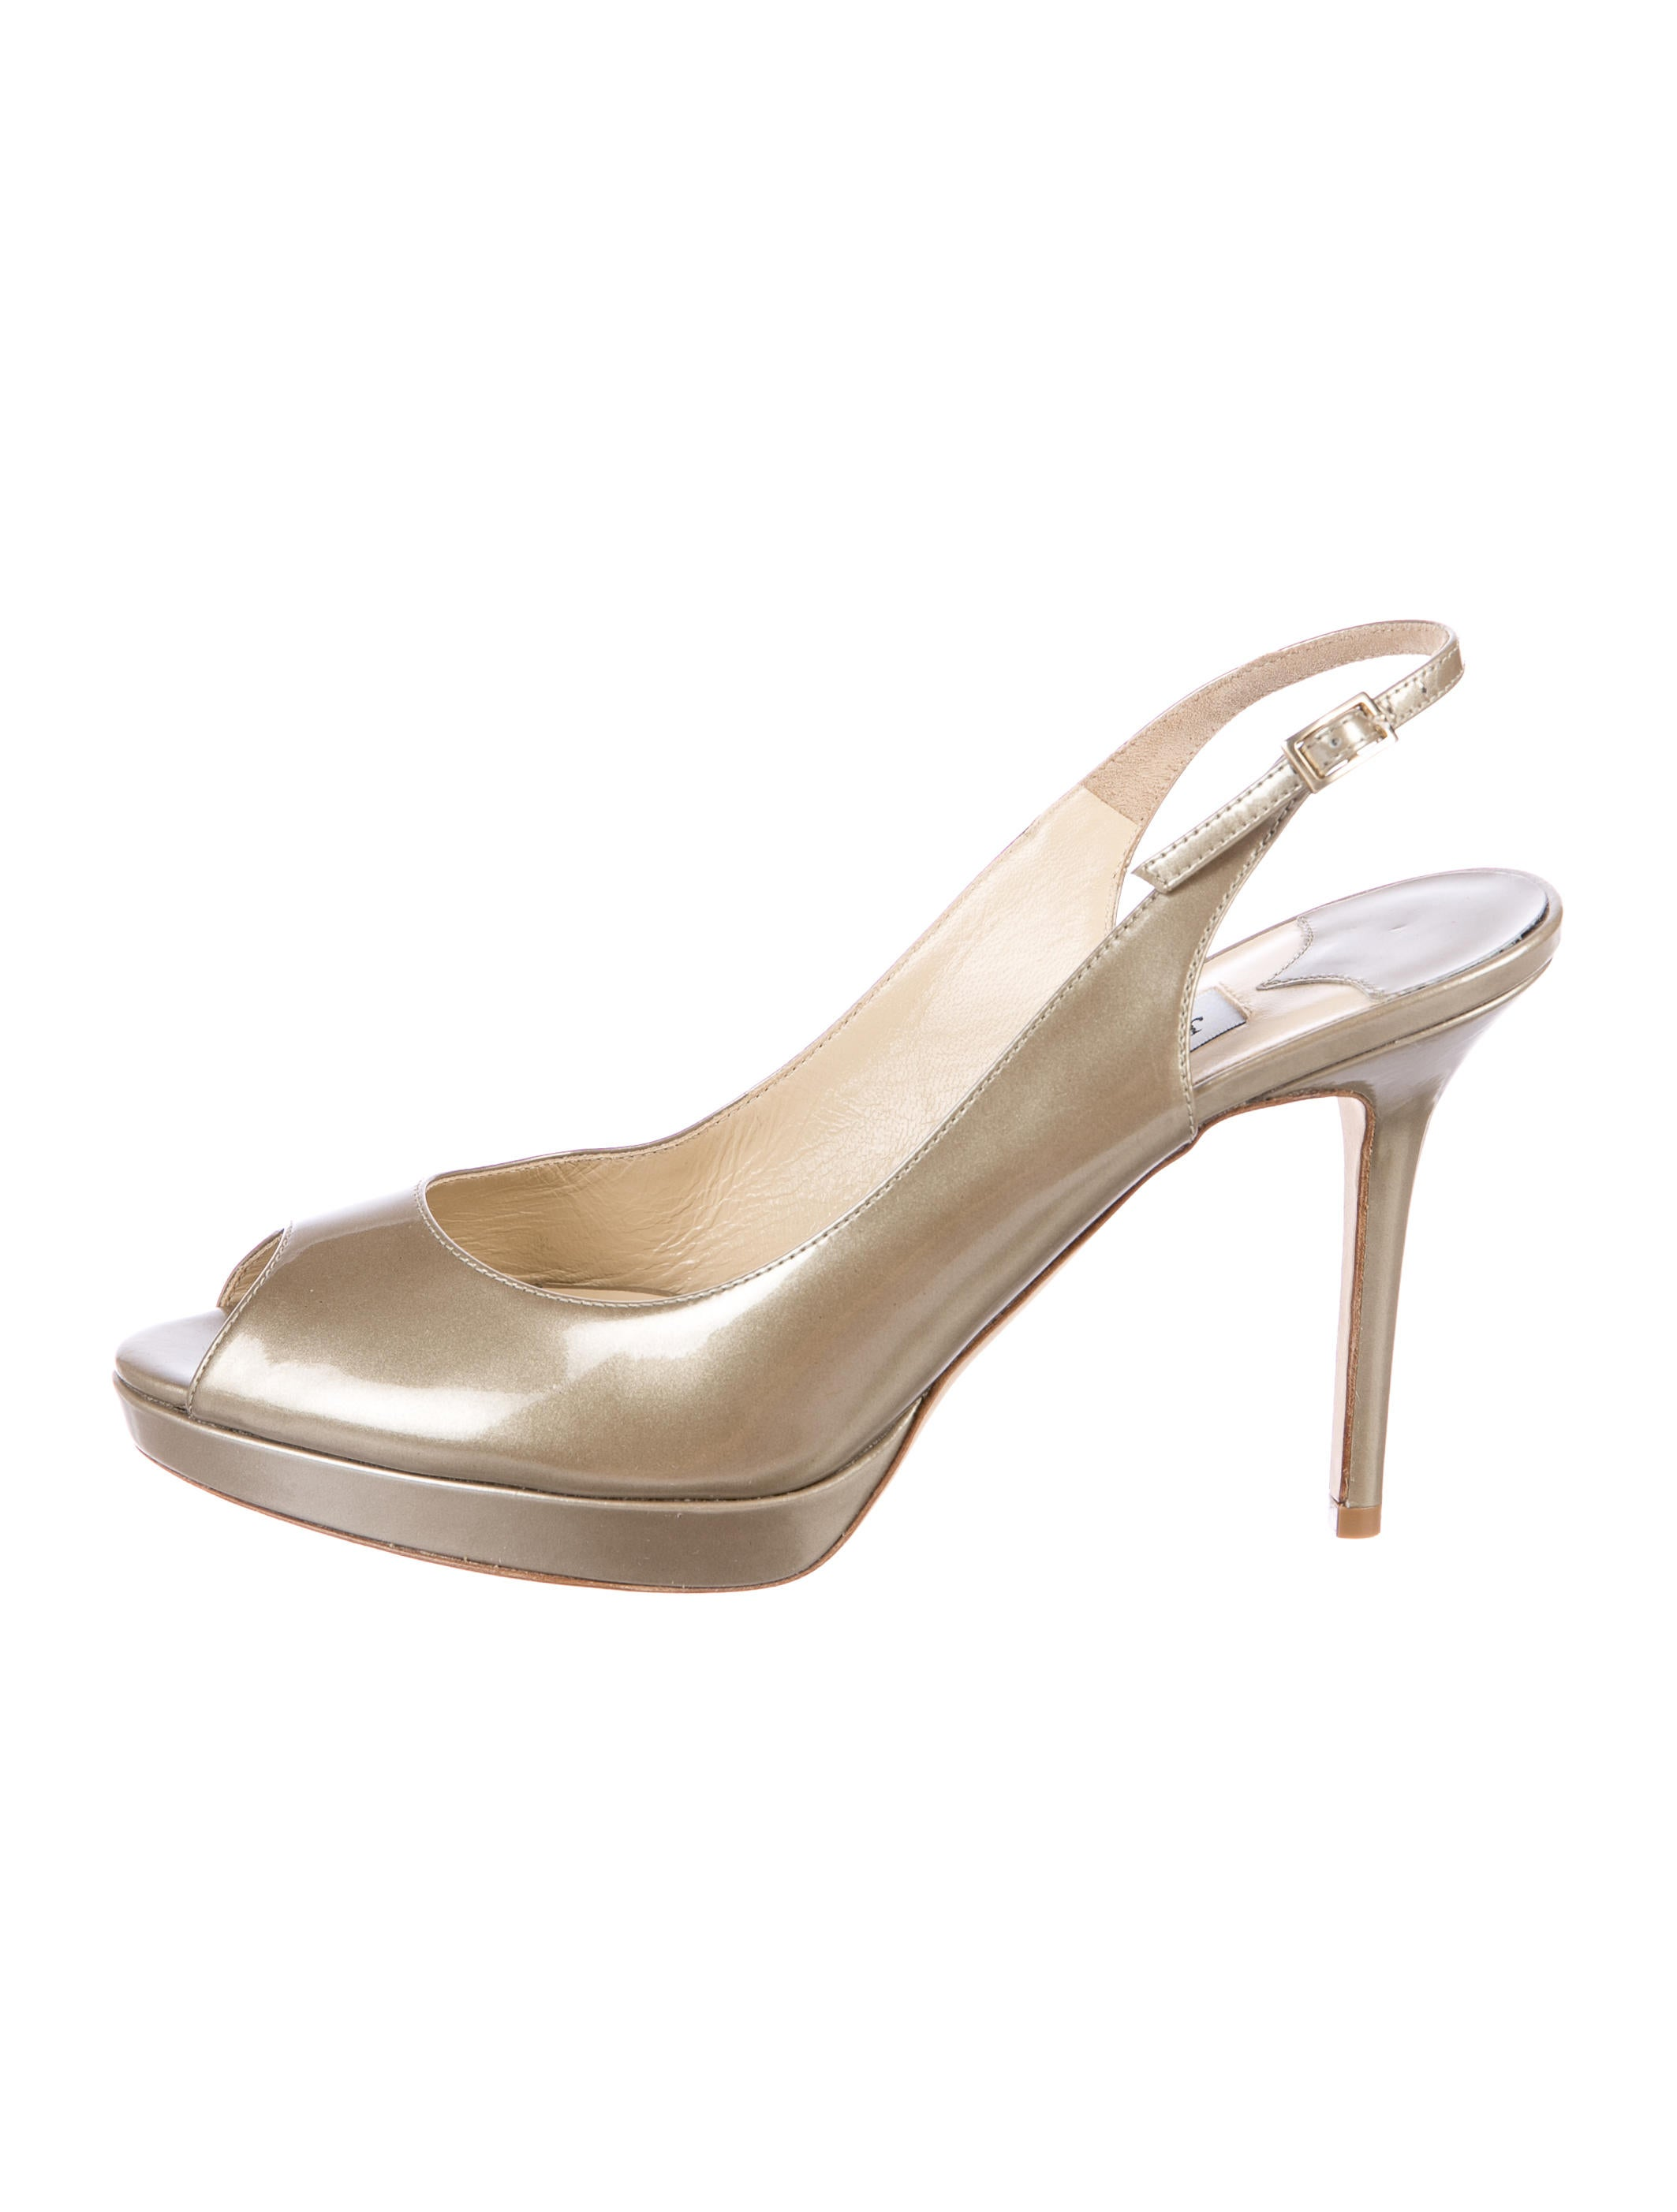 discount excellent cheap sale how much Jimmy Choo Patent Leather Peep-Toe Pumps w/ Tags RfcfIbb